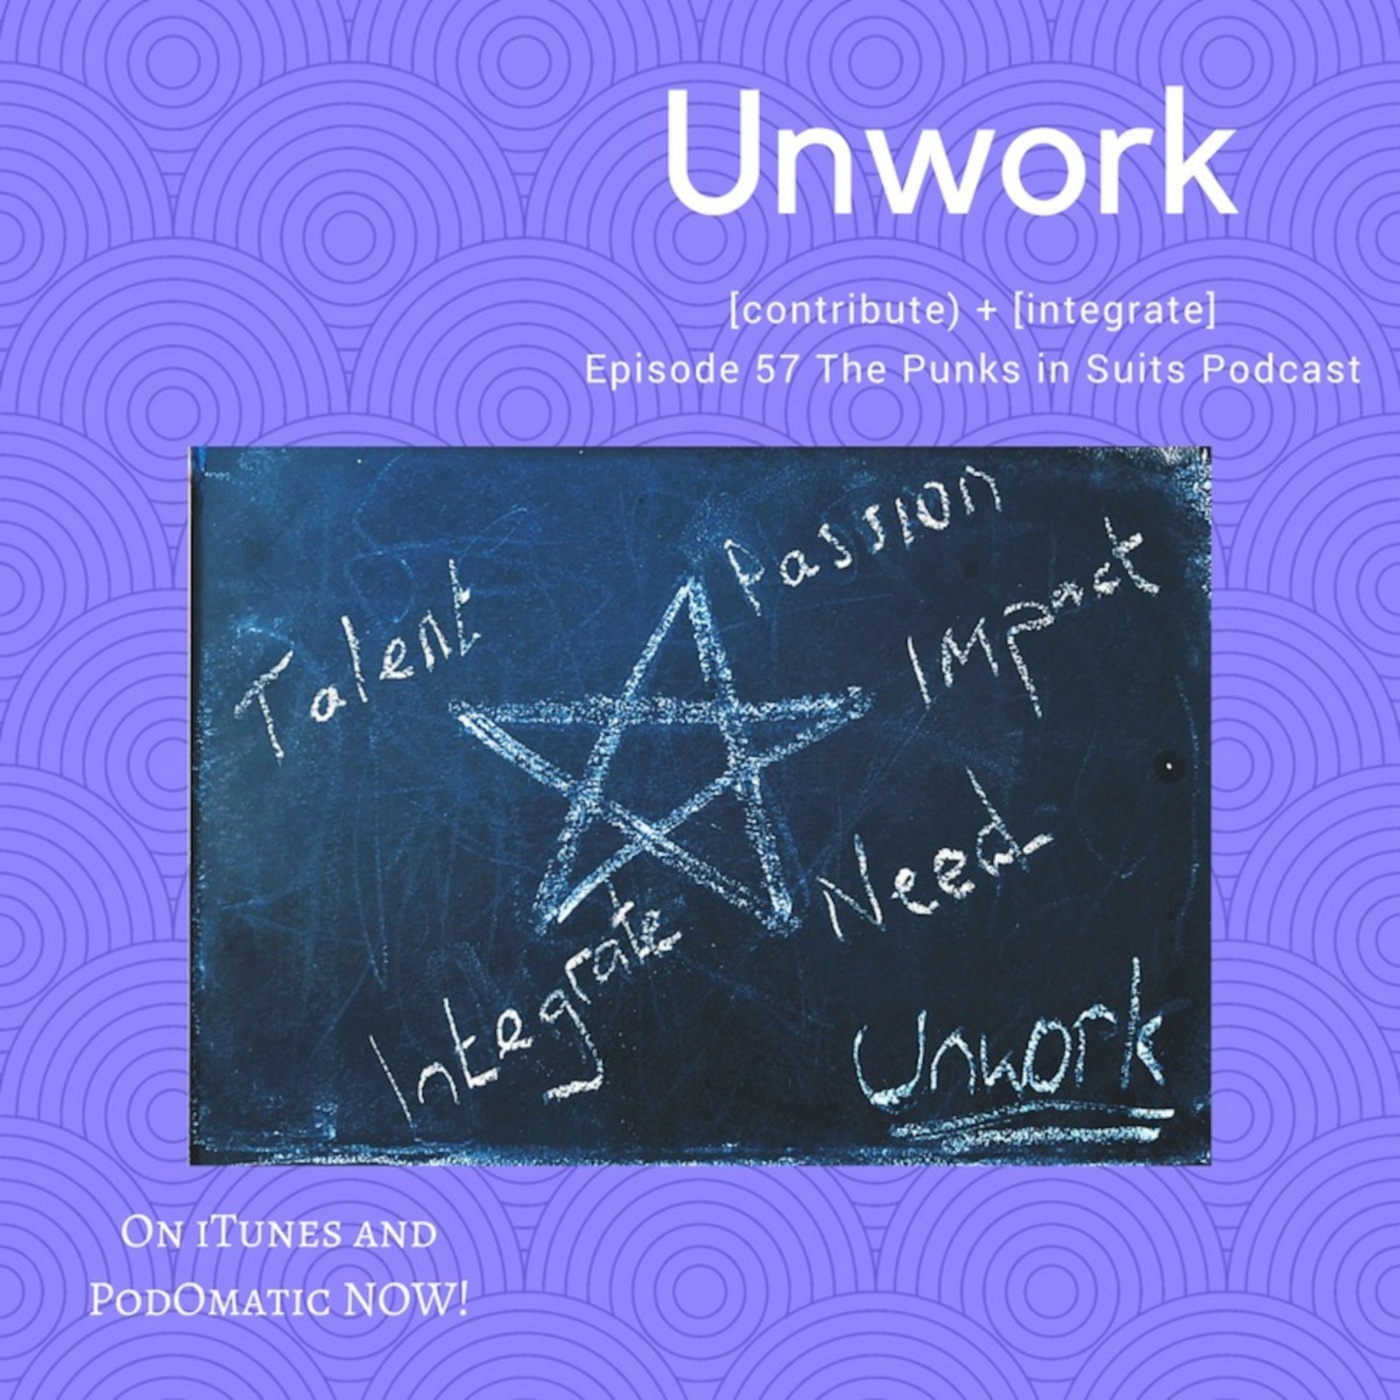 Episode 57: Unwork!